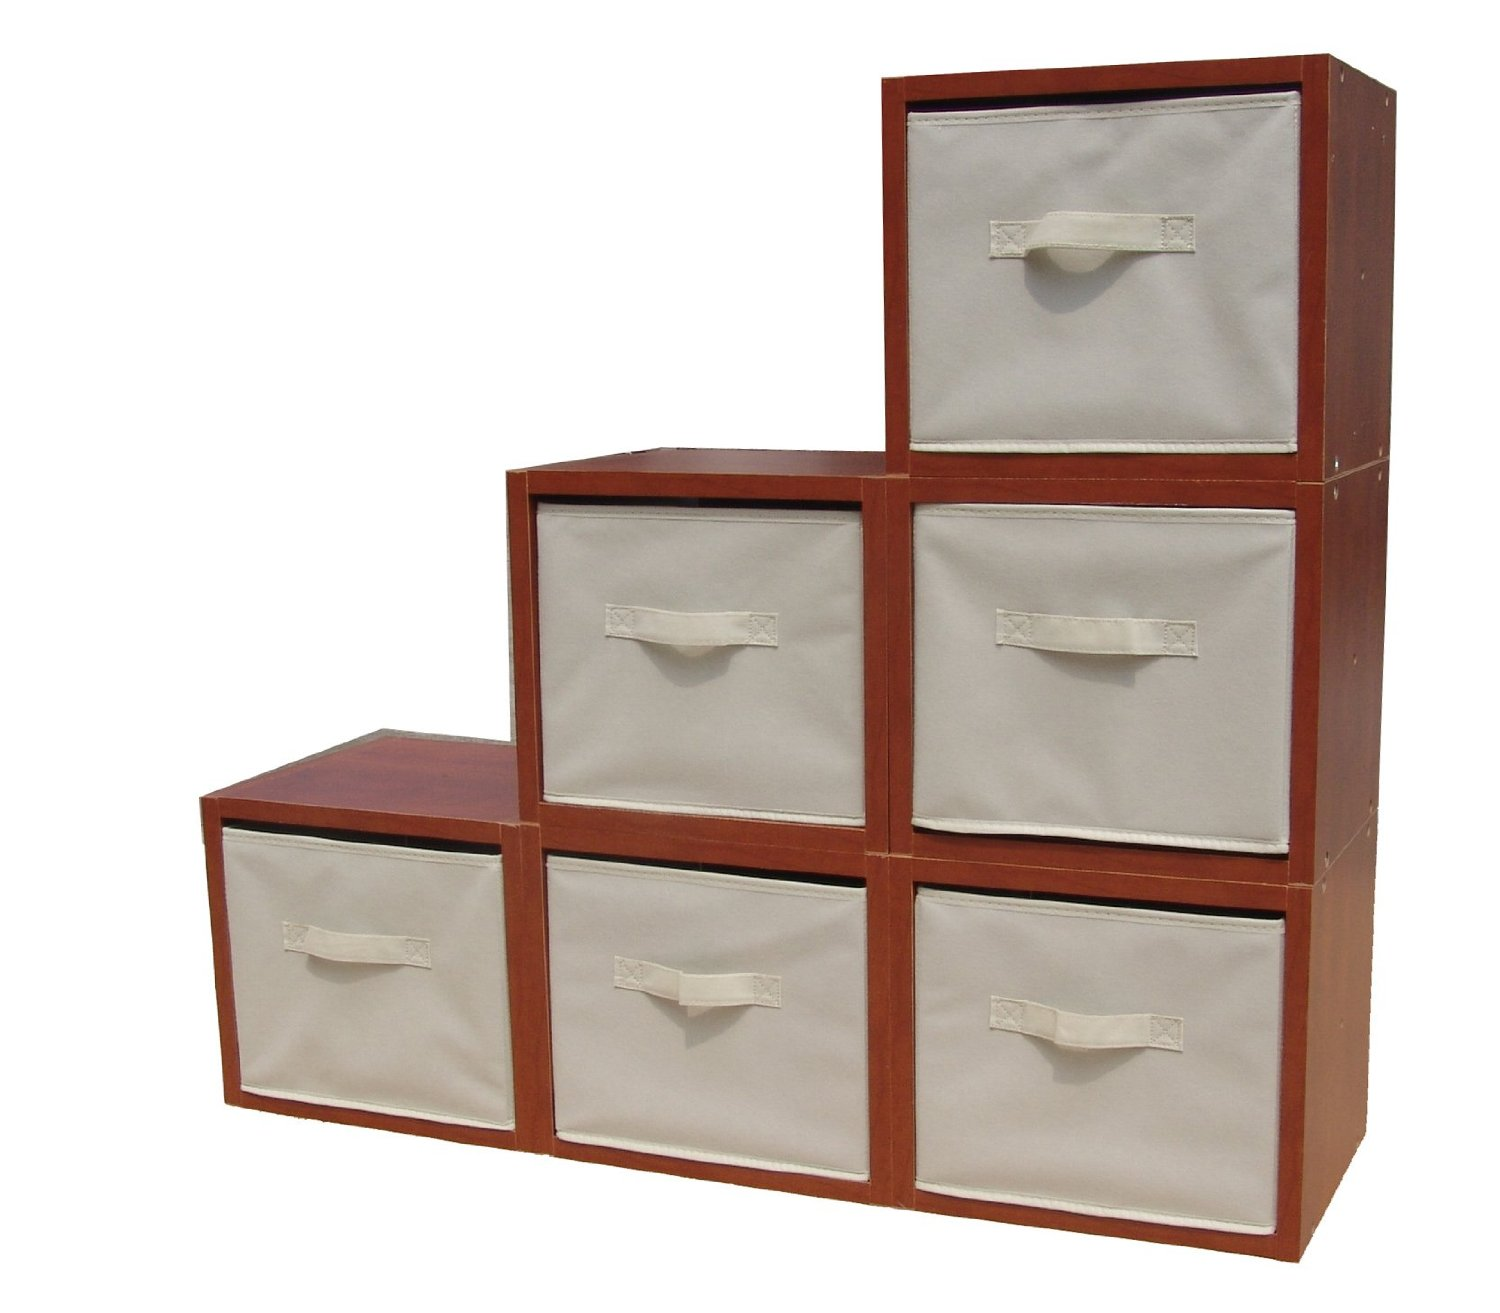 Etonnant Get Quotations · FixtureDisplays Cubby Hole Storage Bin Modular Wood Blocks  With Fabric Bins 6/Set 11364 11364